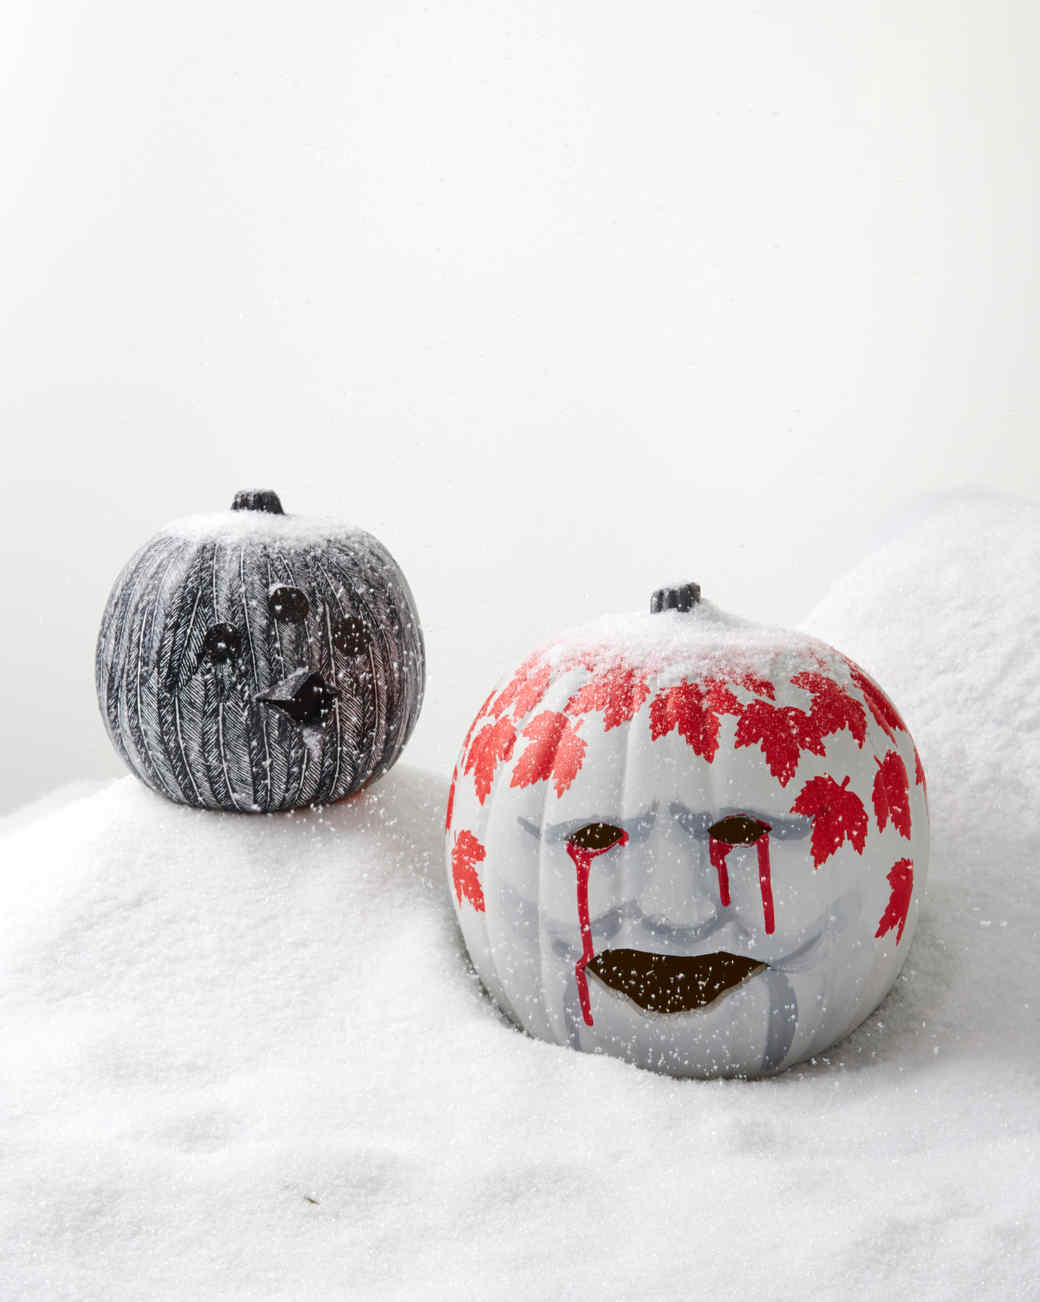 game-of-thrones-pumpkins-0210-d112573.jpg